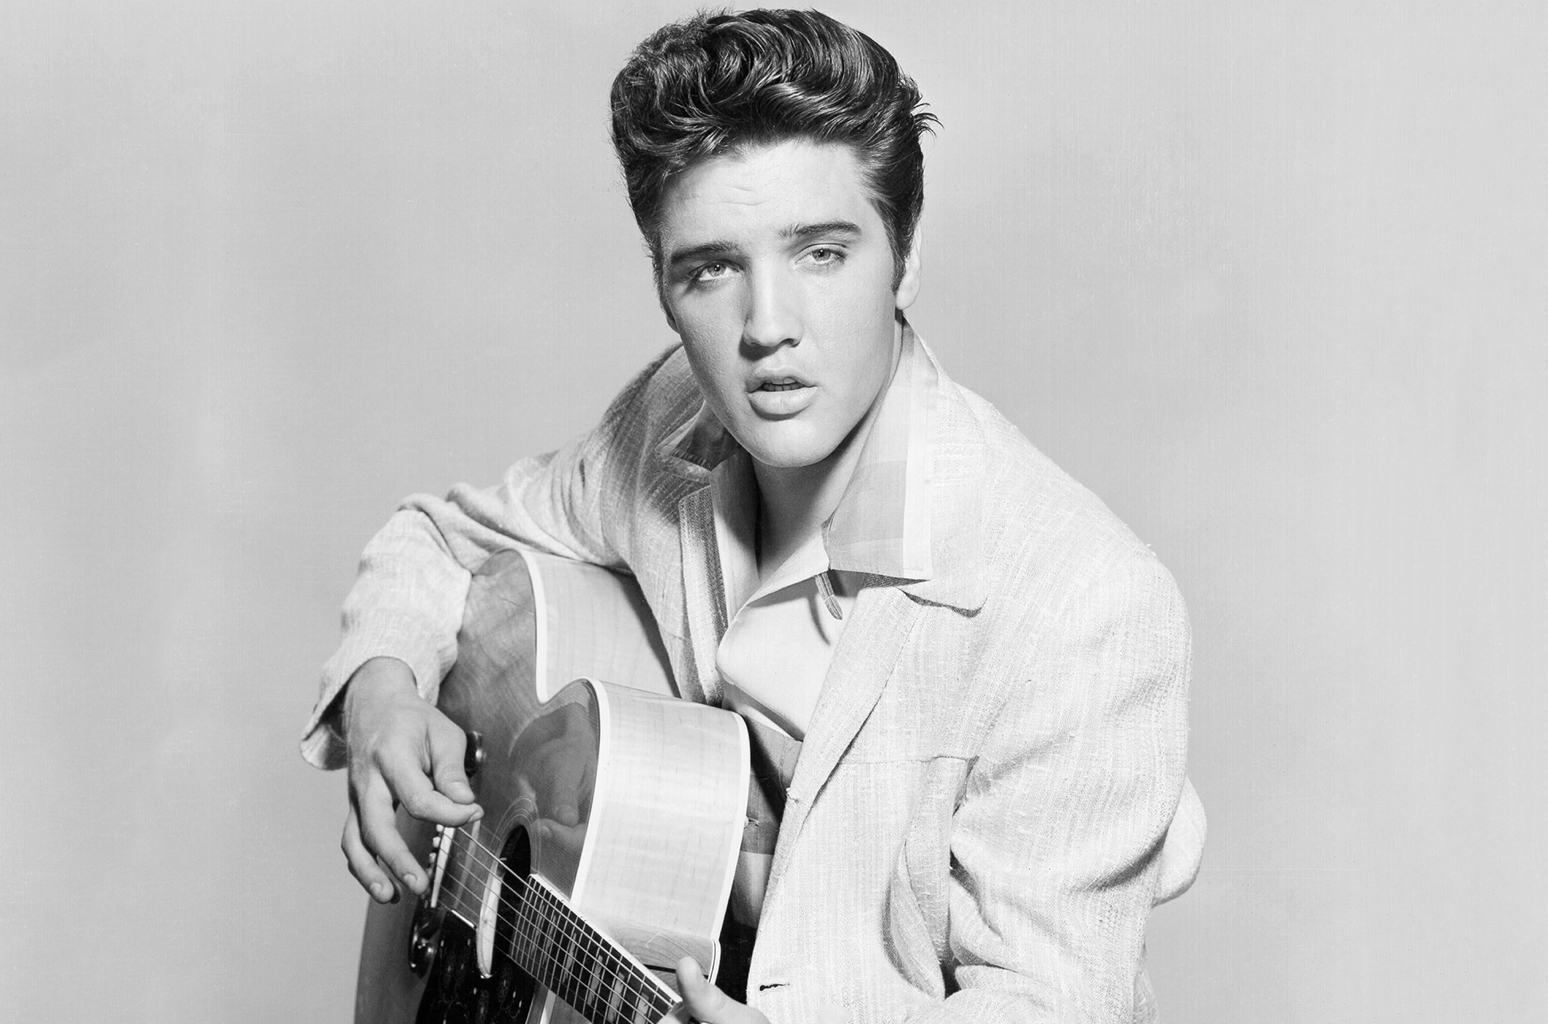 elvis-presley-bw-acoustic-billboard-1548.jpg